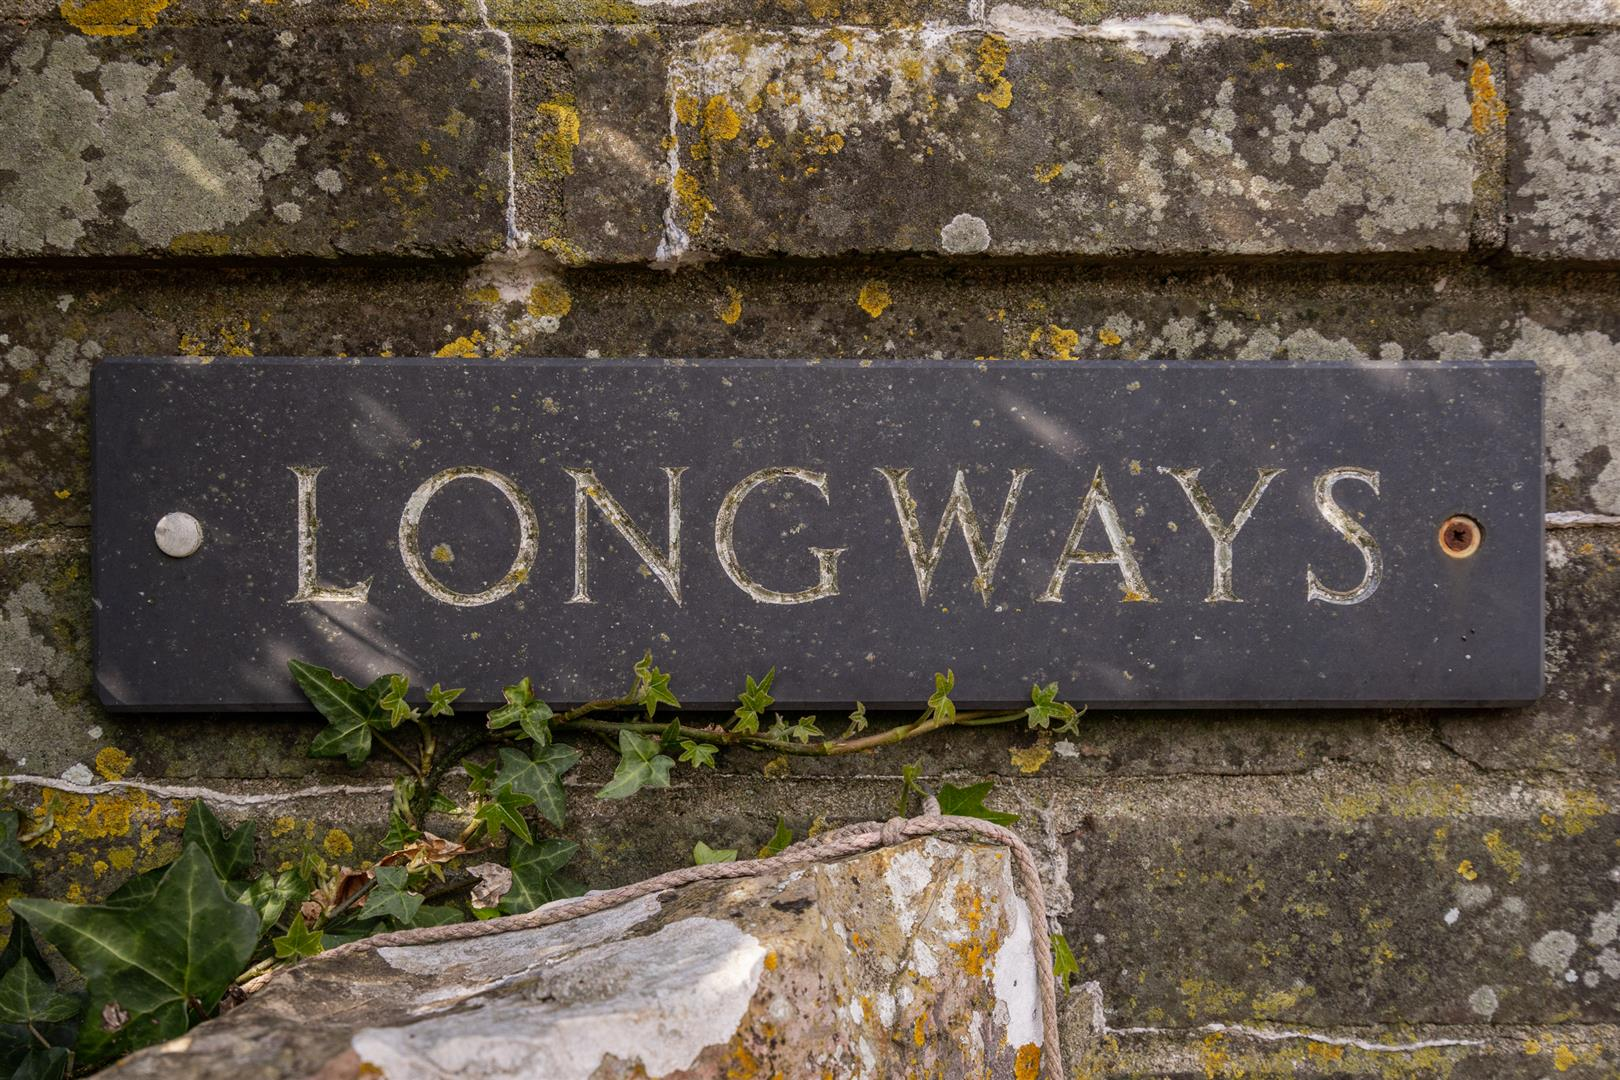 Long Ways, Middleton, Rhossili, Swansea, SA3 1PL